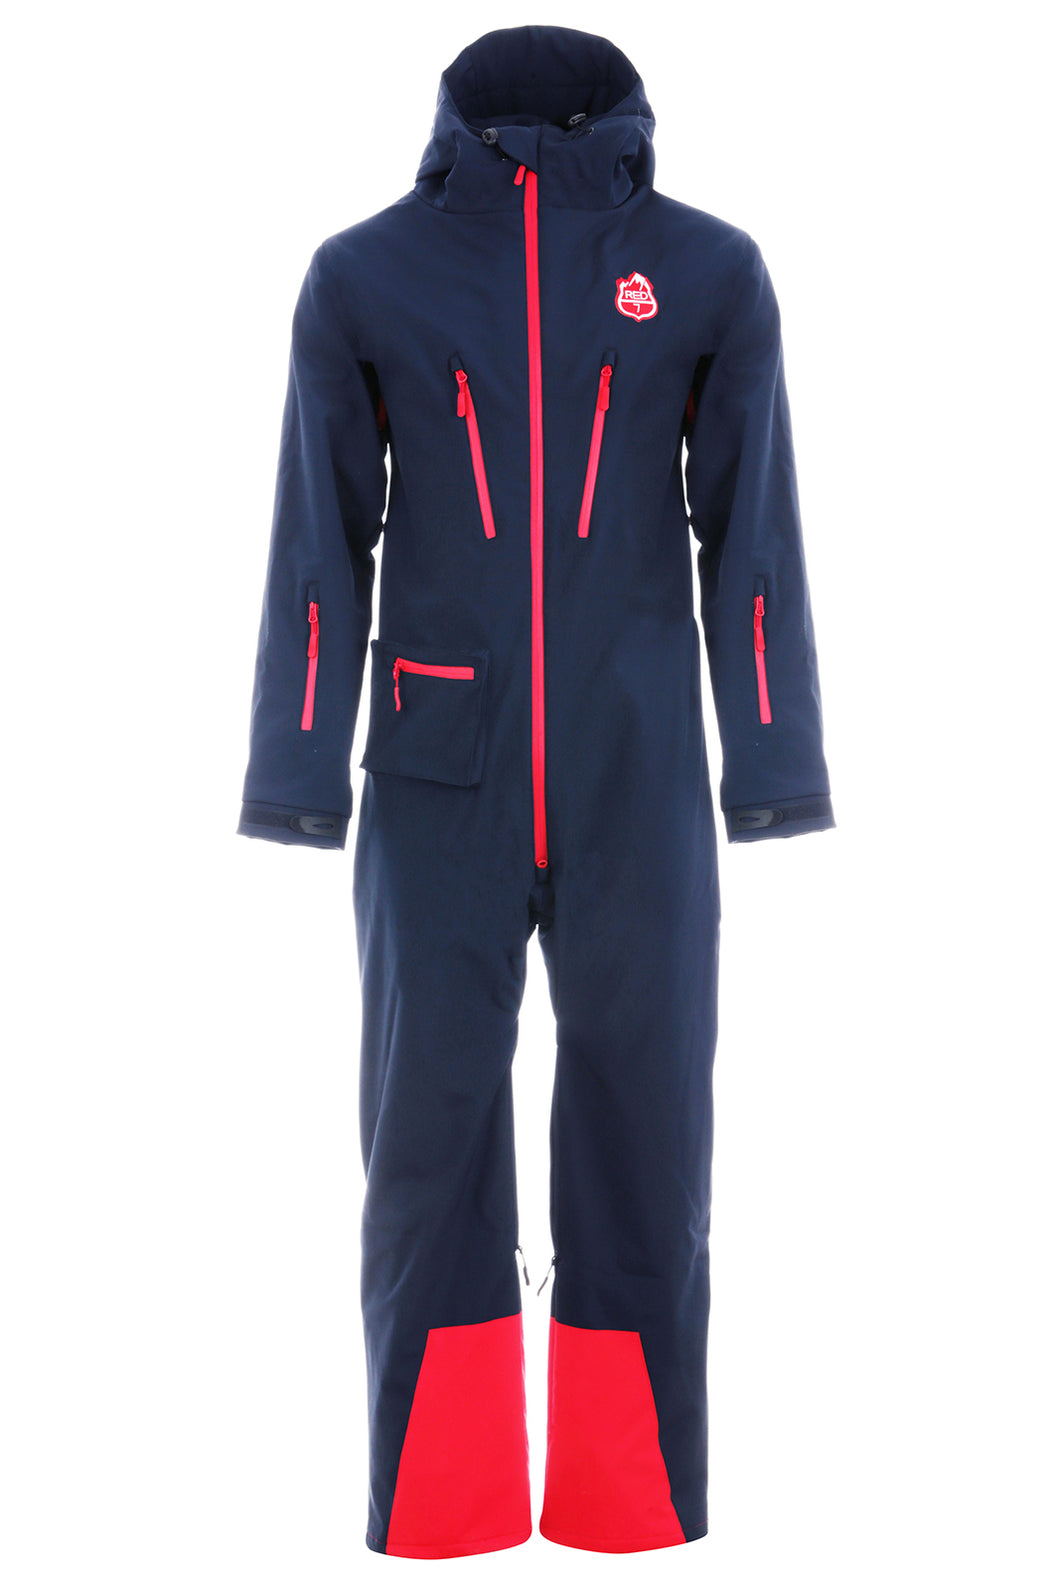 Red7 All In One Ski Suit NAVY